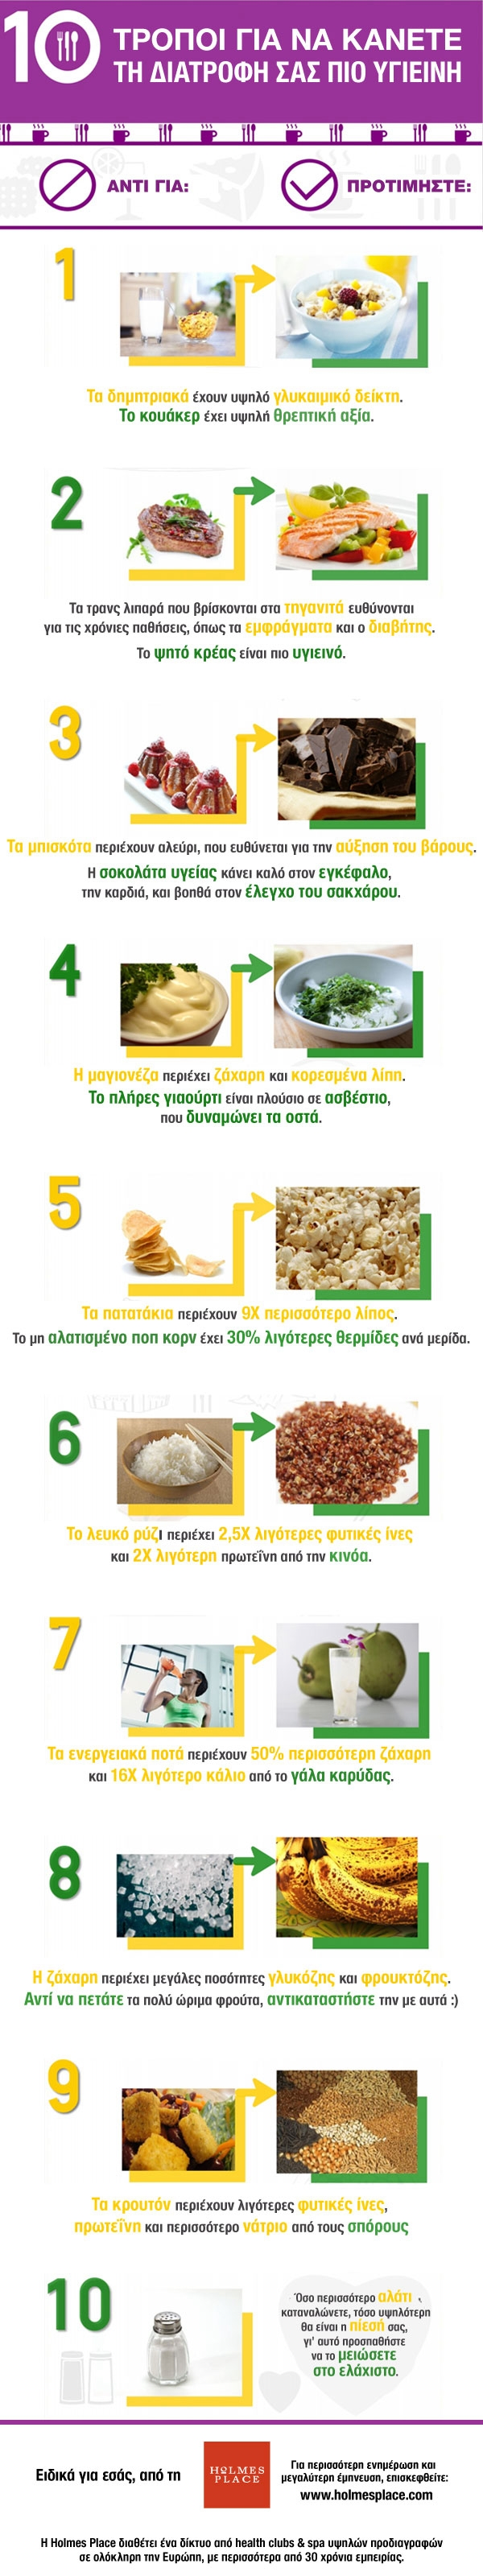 infographic-foodtricks